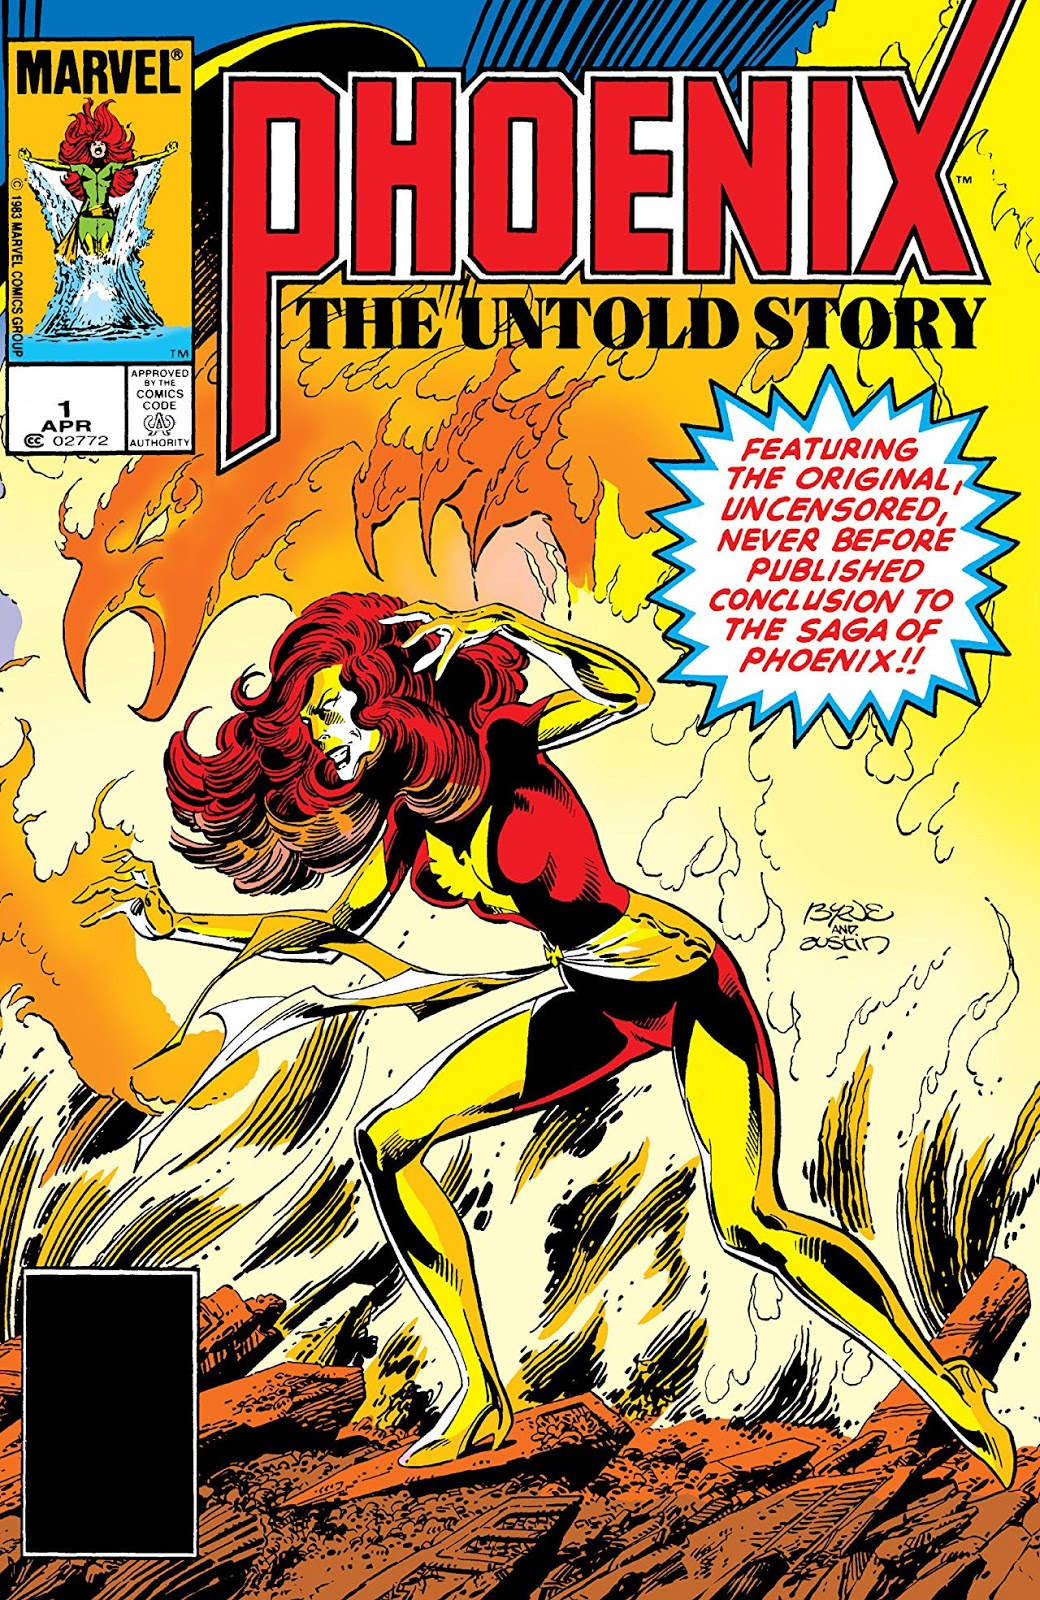 Dark Phoenix gesturing with energy effect around her